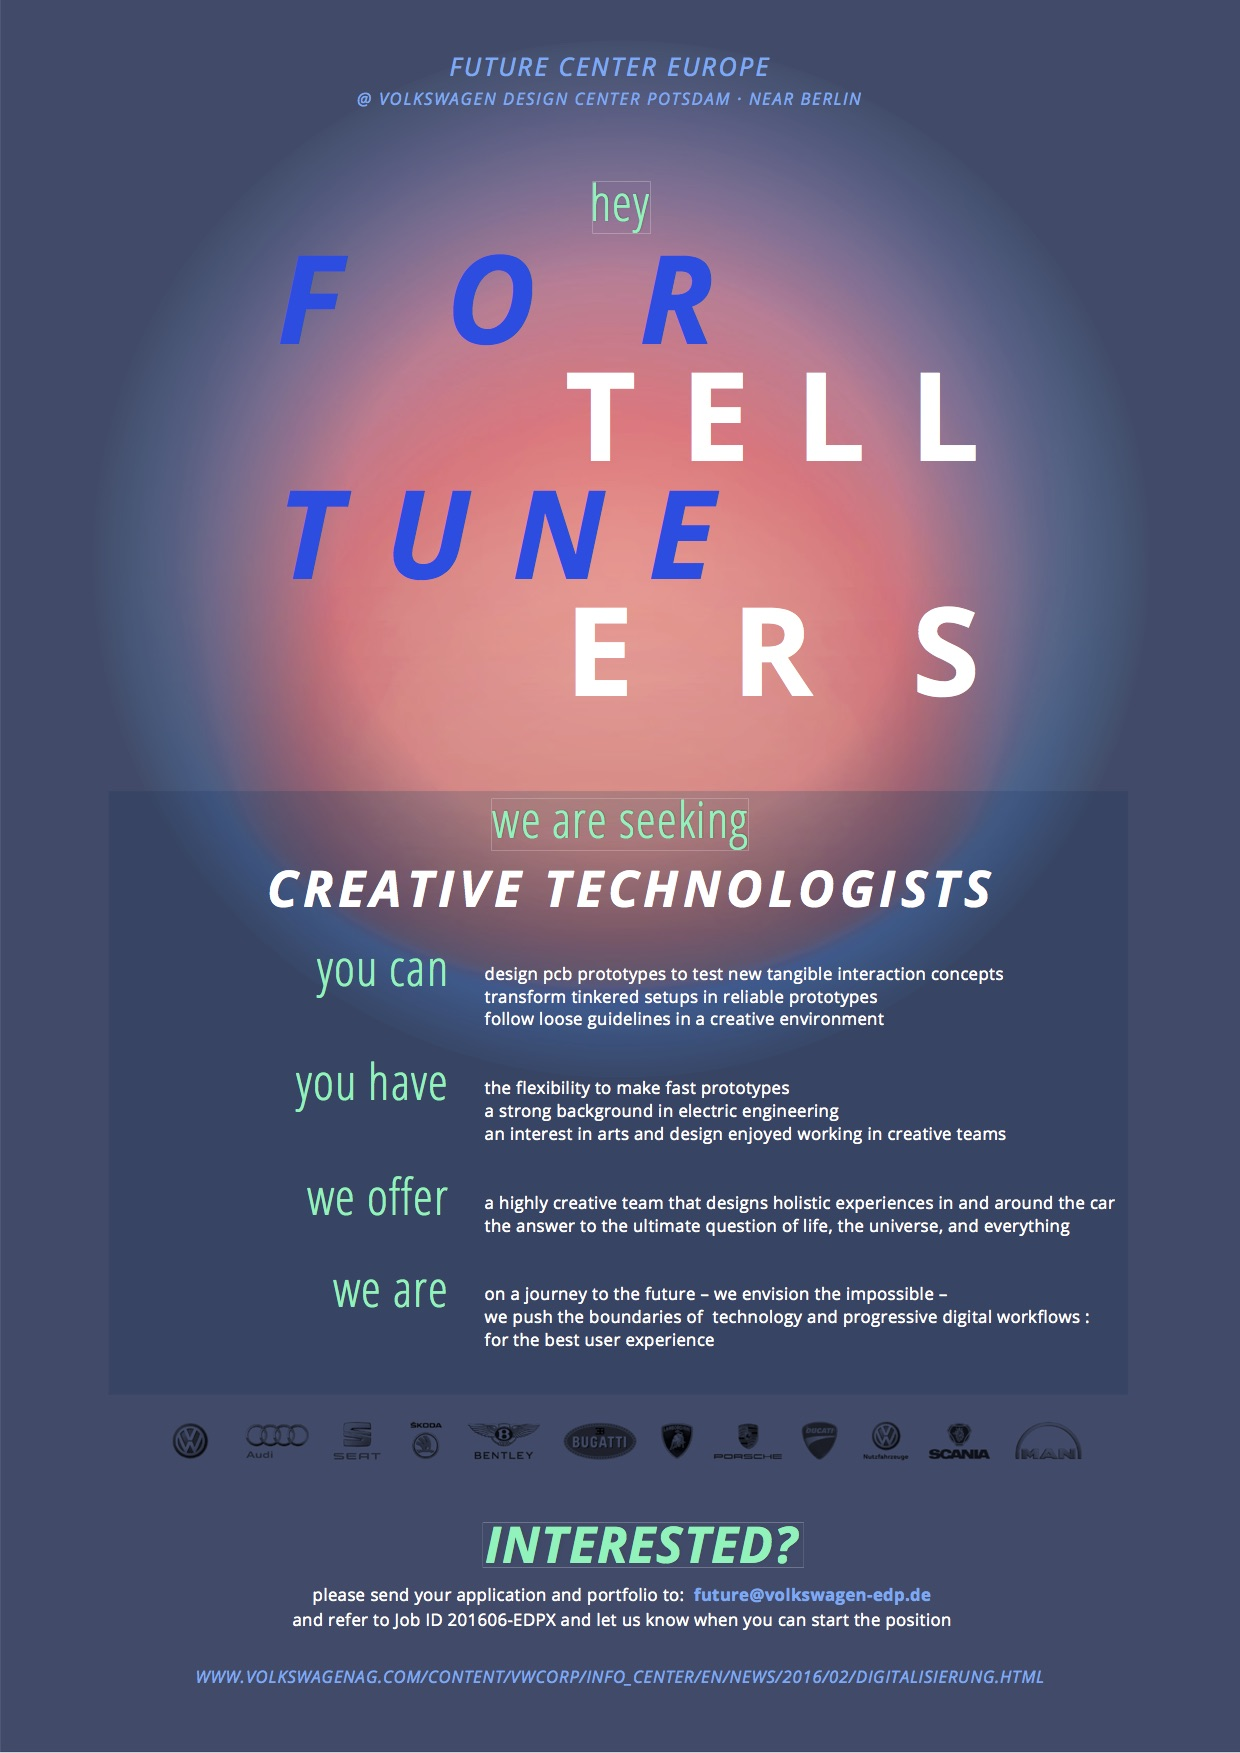 Creative Technologists wanted